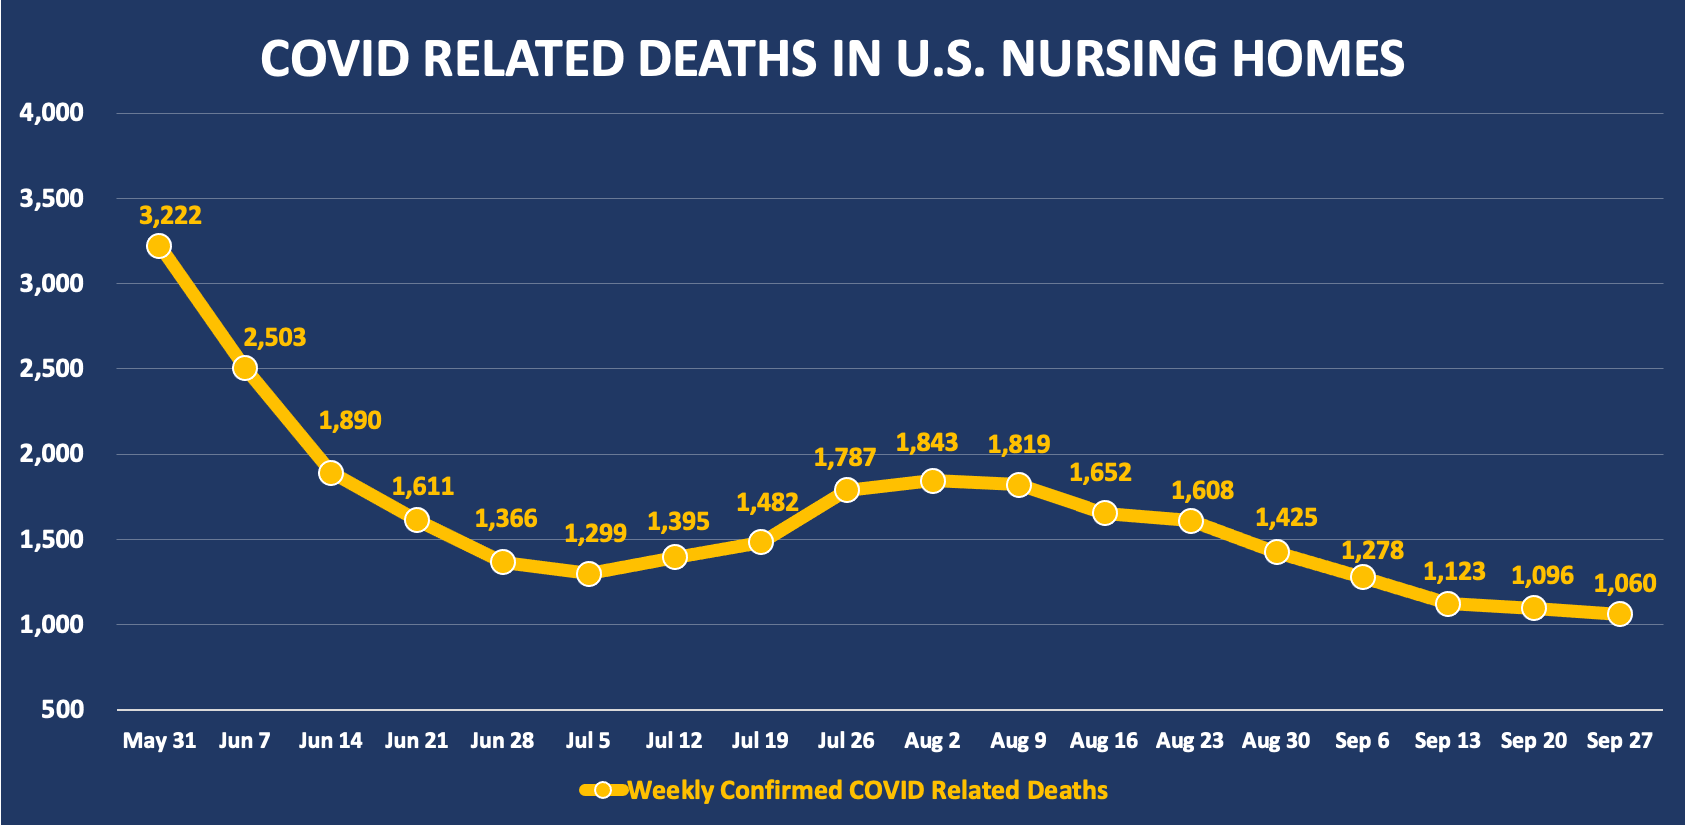 COVID related deaths in U.S. nursing homes.